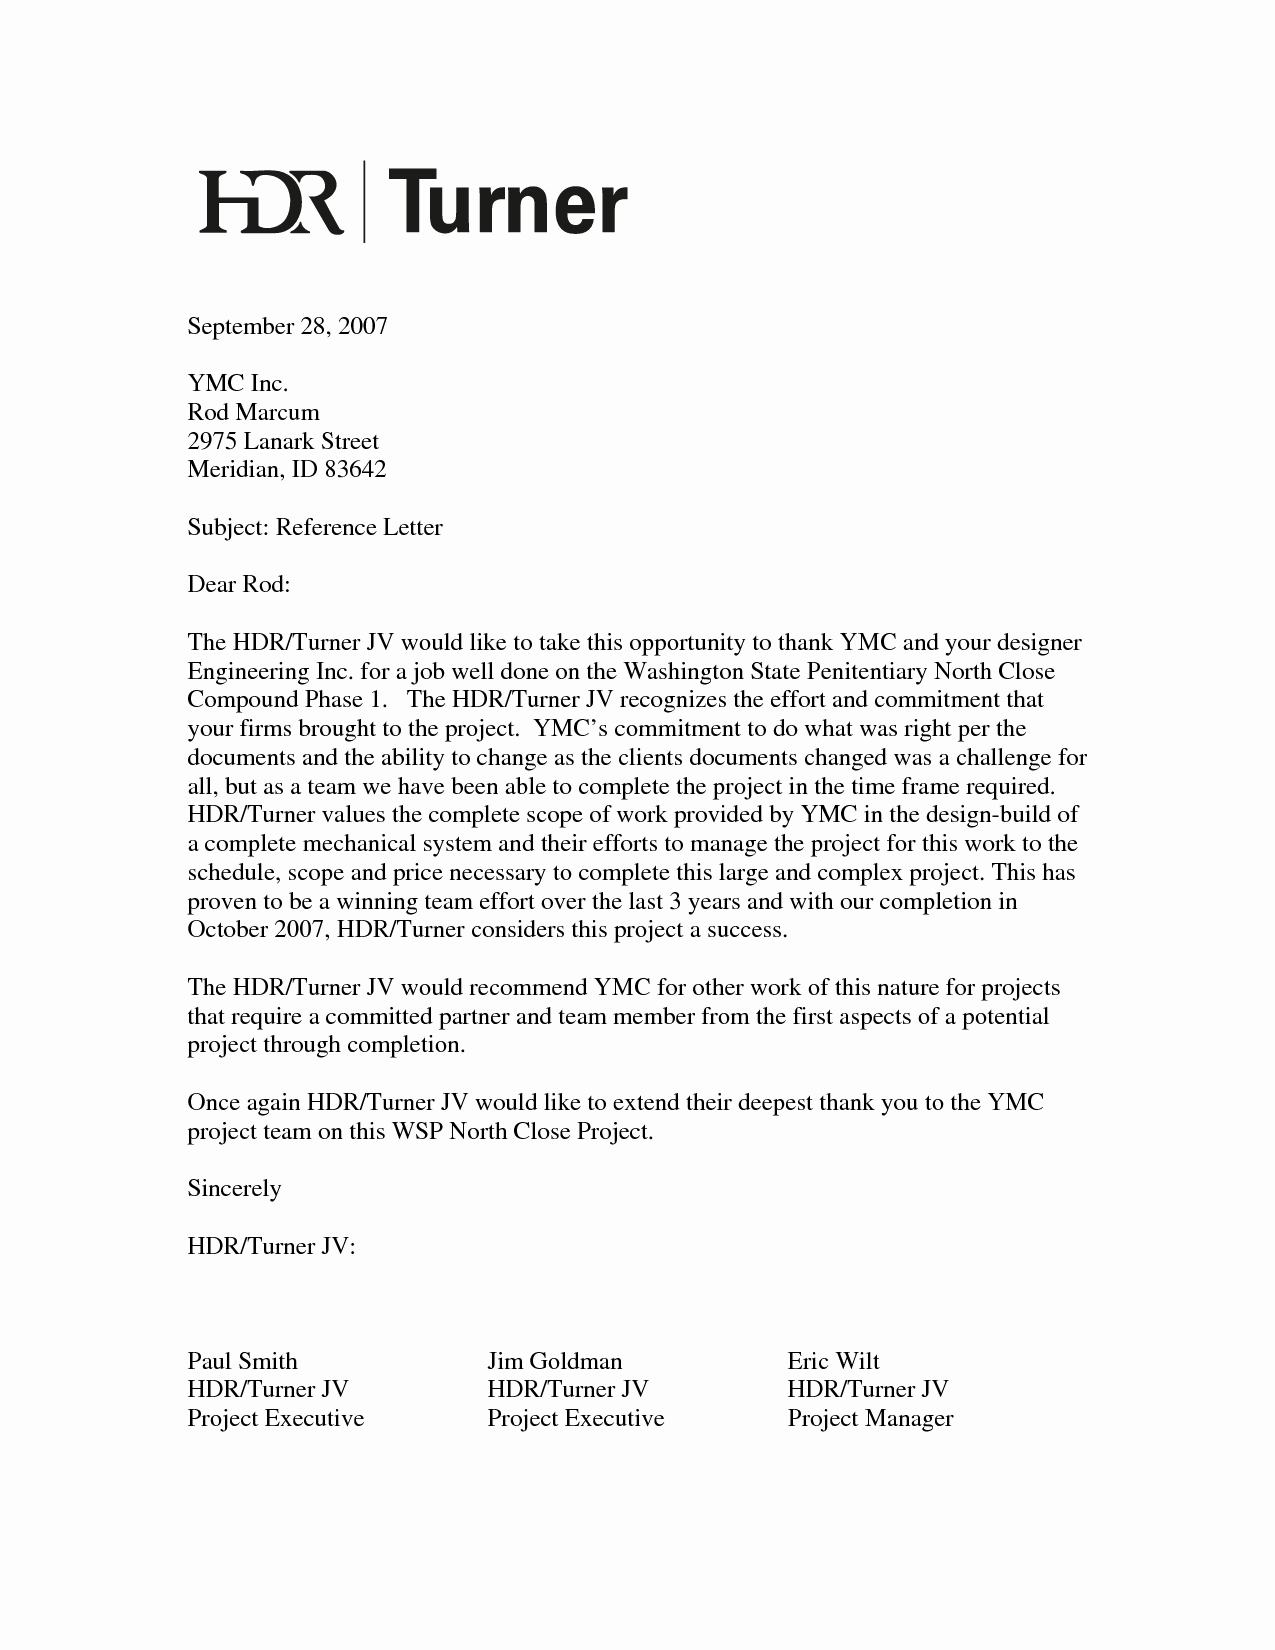 Job Recommendation Letter Sample Template New A Job Reference Letter